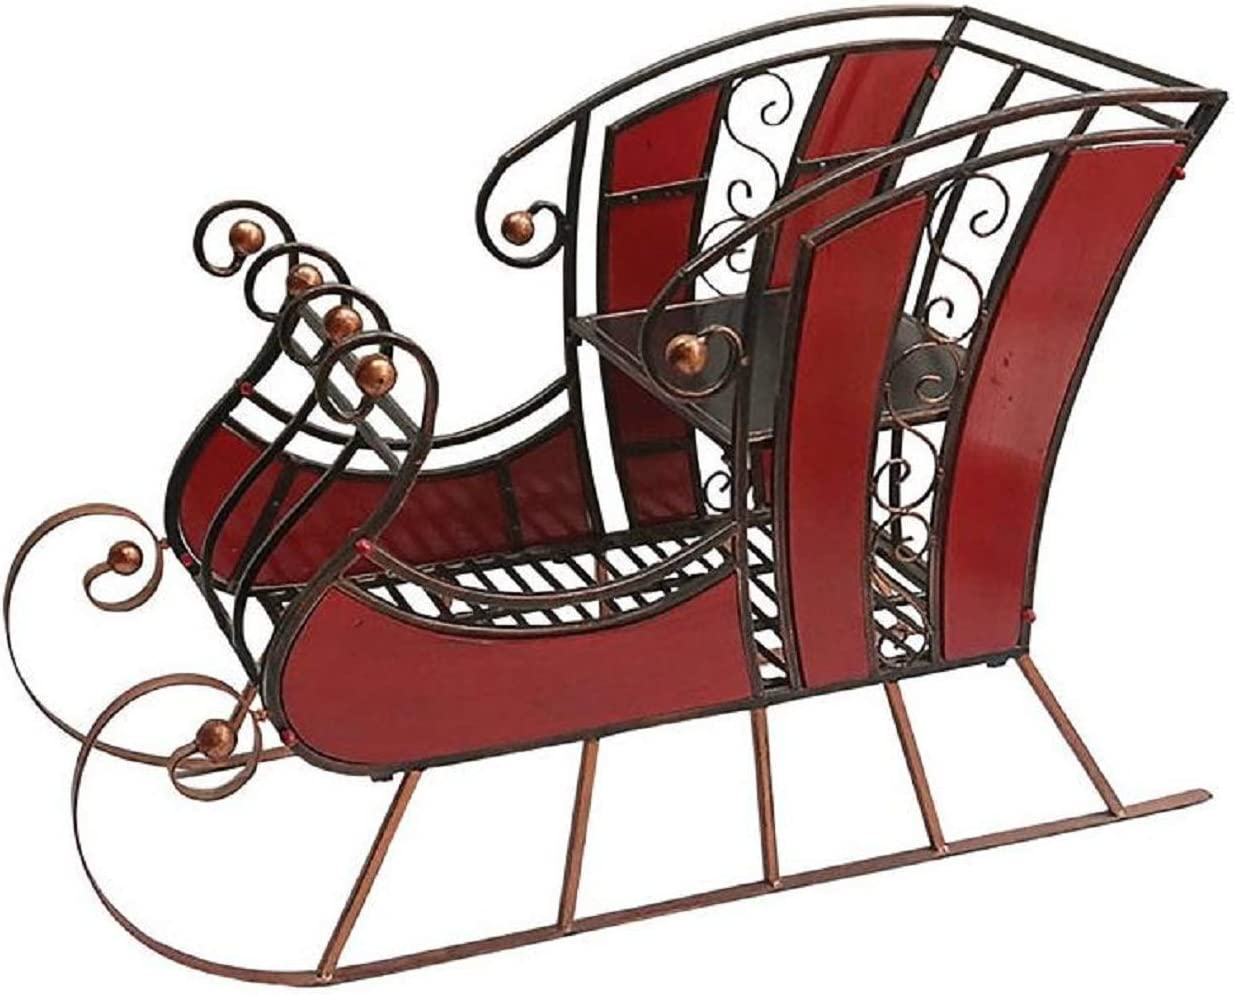 Sunset Vista 38 inches Red Wood and Metal Sleigh Christmas Decor